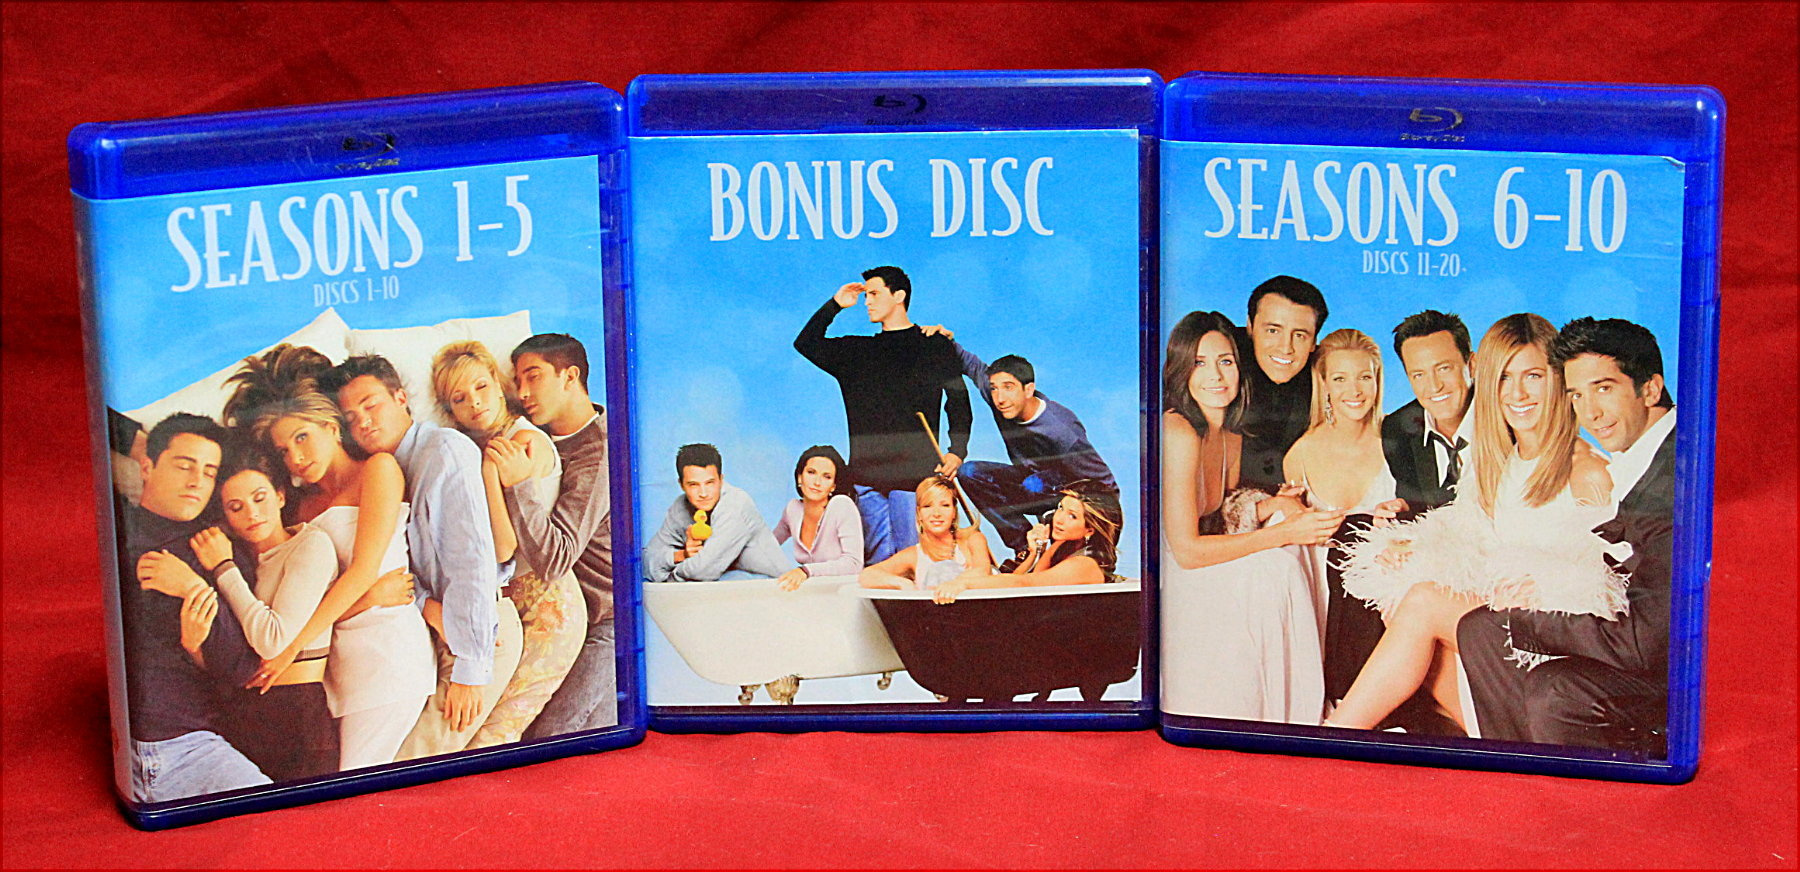 FRIENDS THE COMPLETE SERIES SEASONS 1-10 BLU RAY